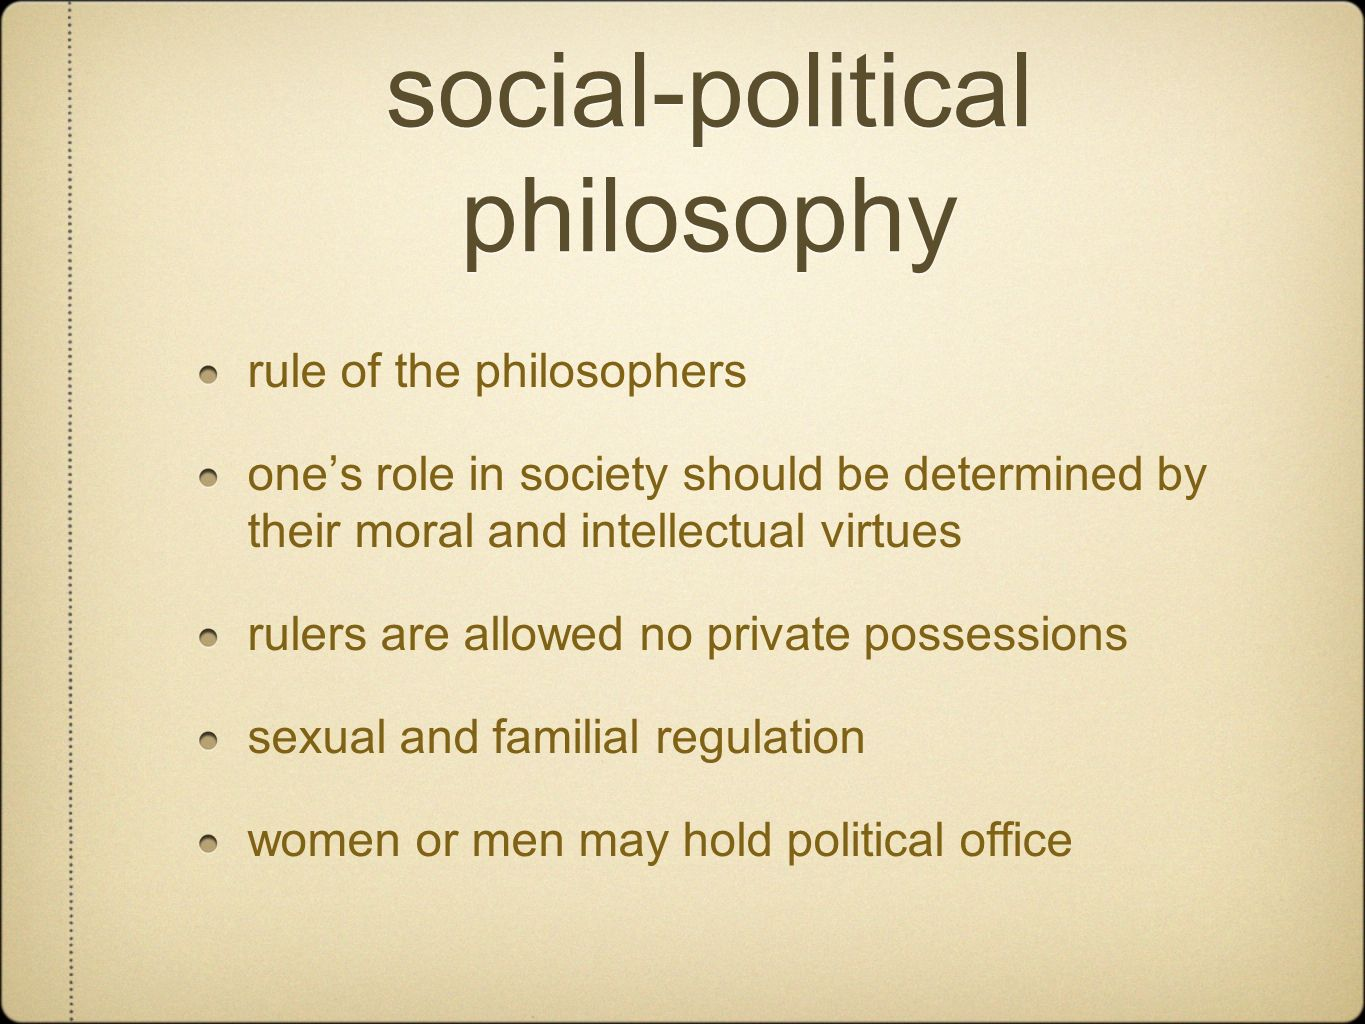 social-political philosophy rule of the philosophers ones role in society should be determined by their moral and intellectual virtues rulers are allowed no private possessions sexual and familial regulation women or men may hold political office